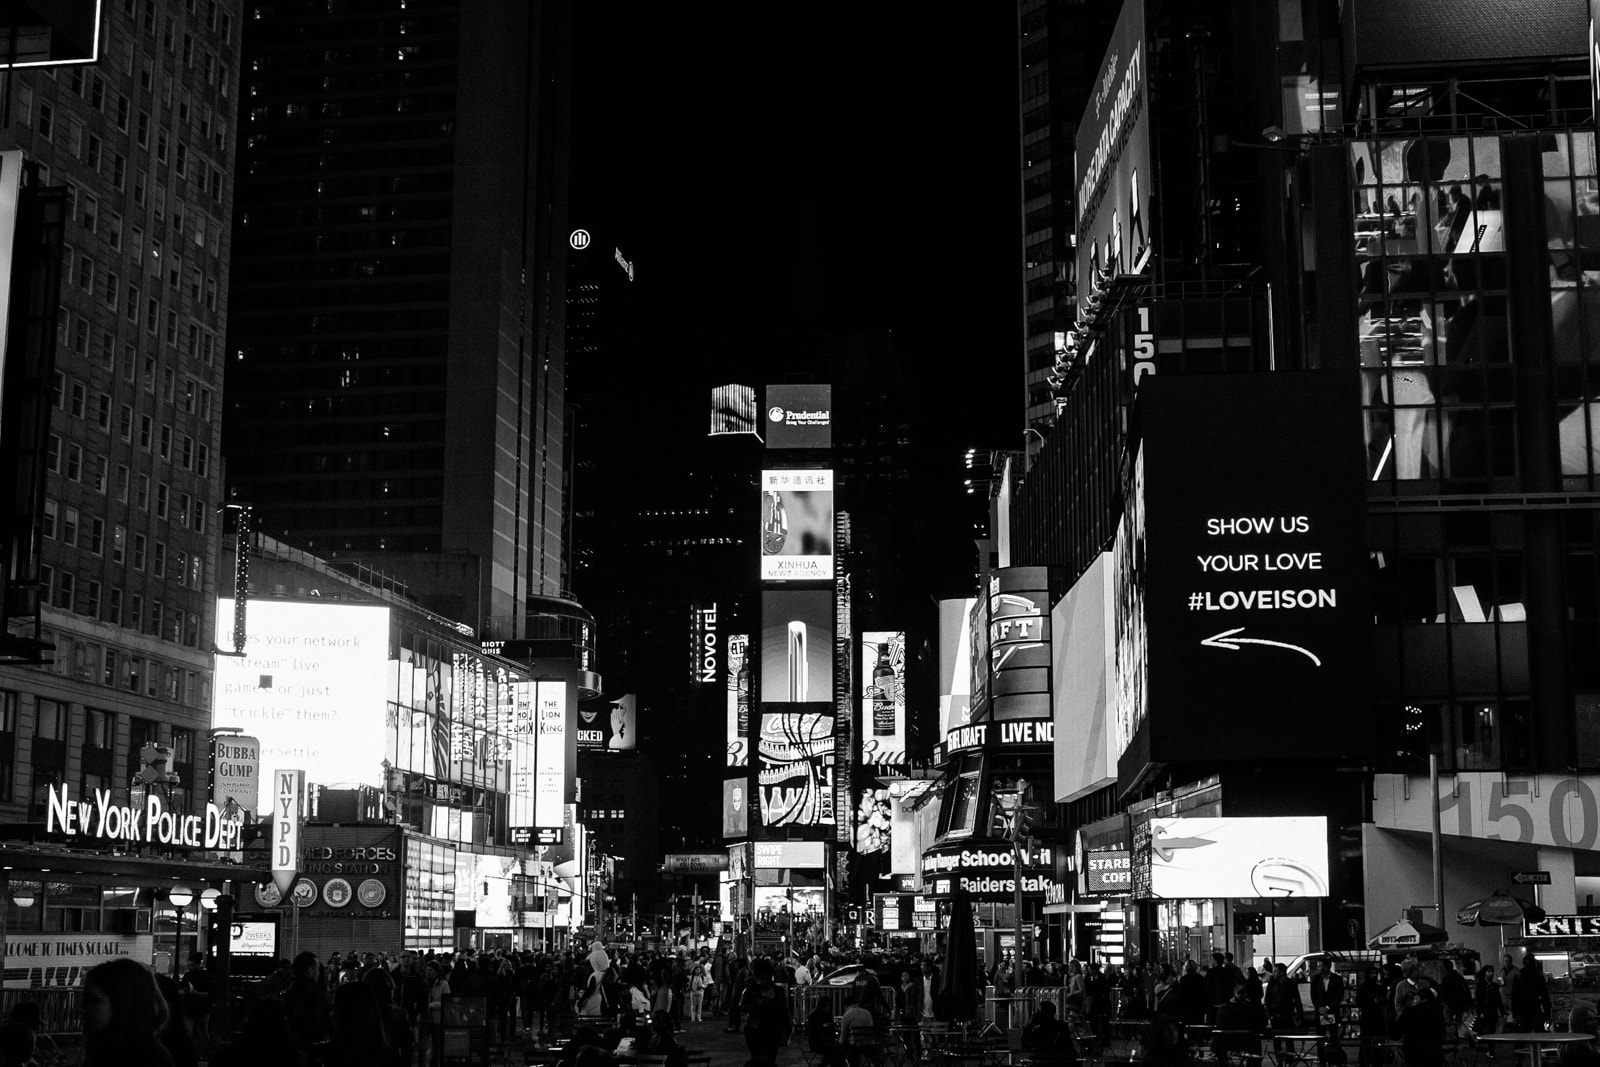 Times Square at night in NYC